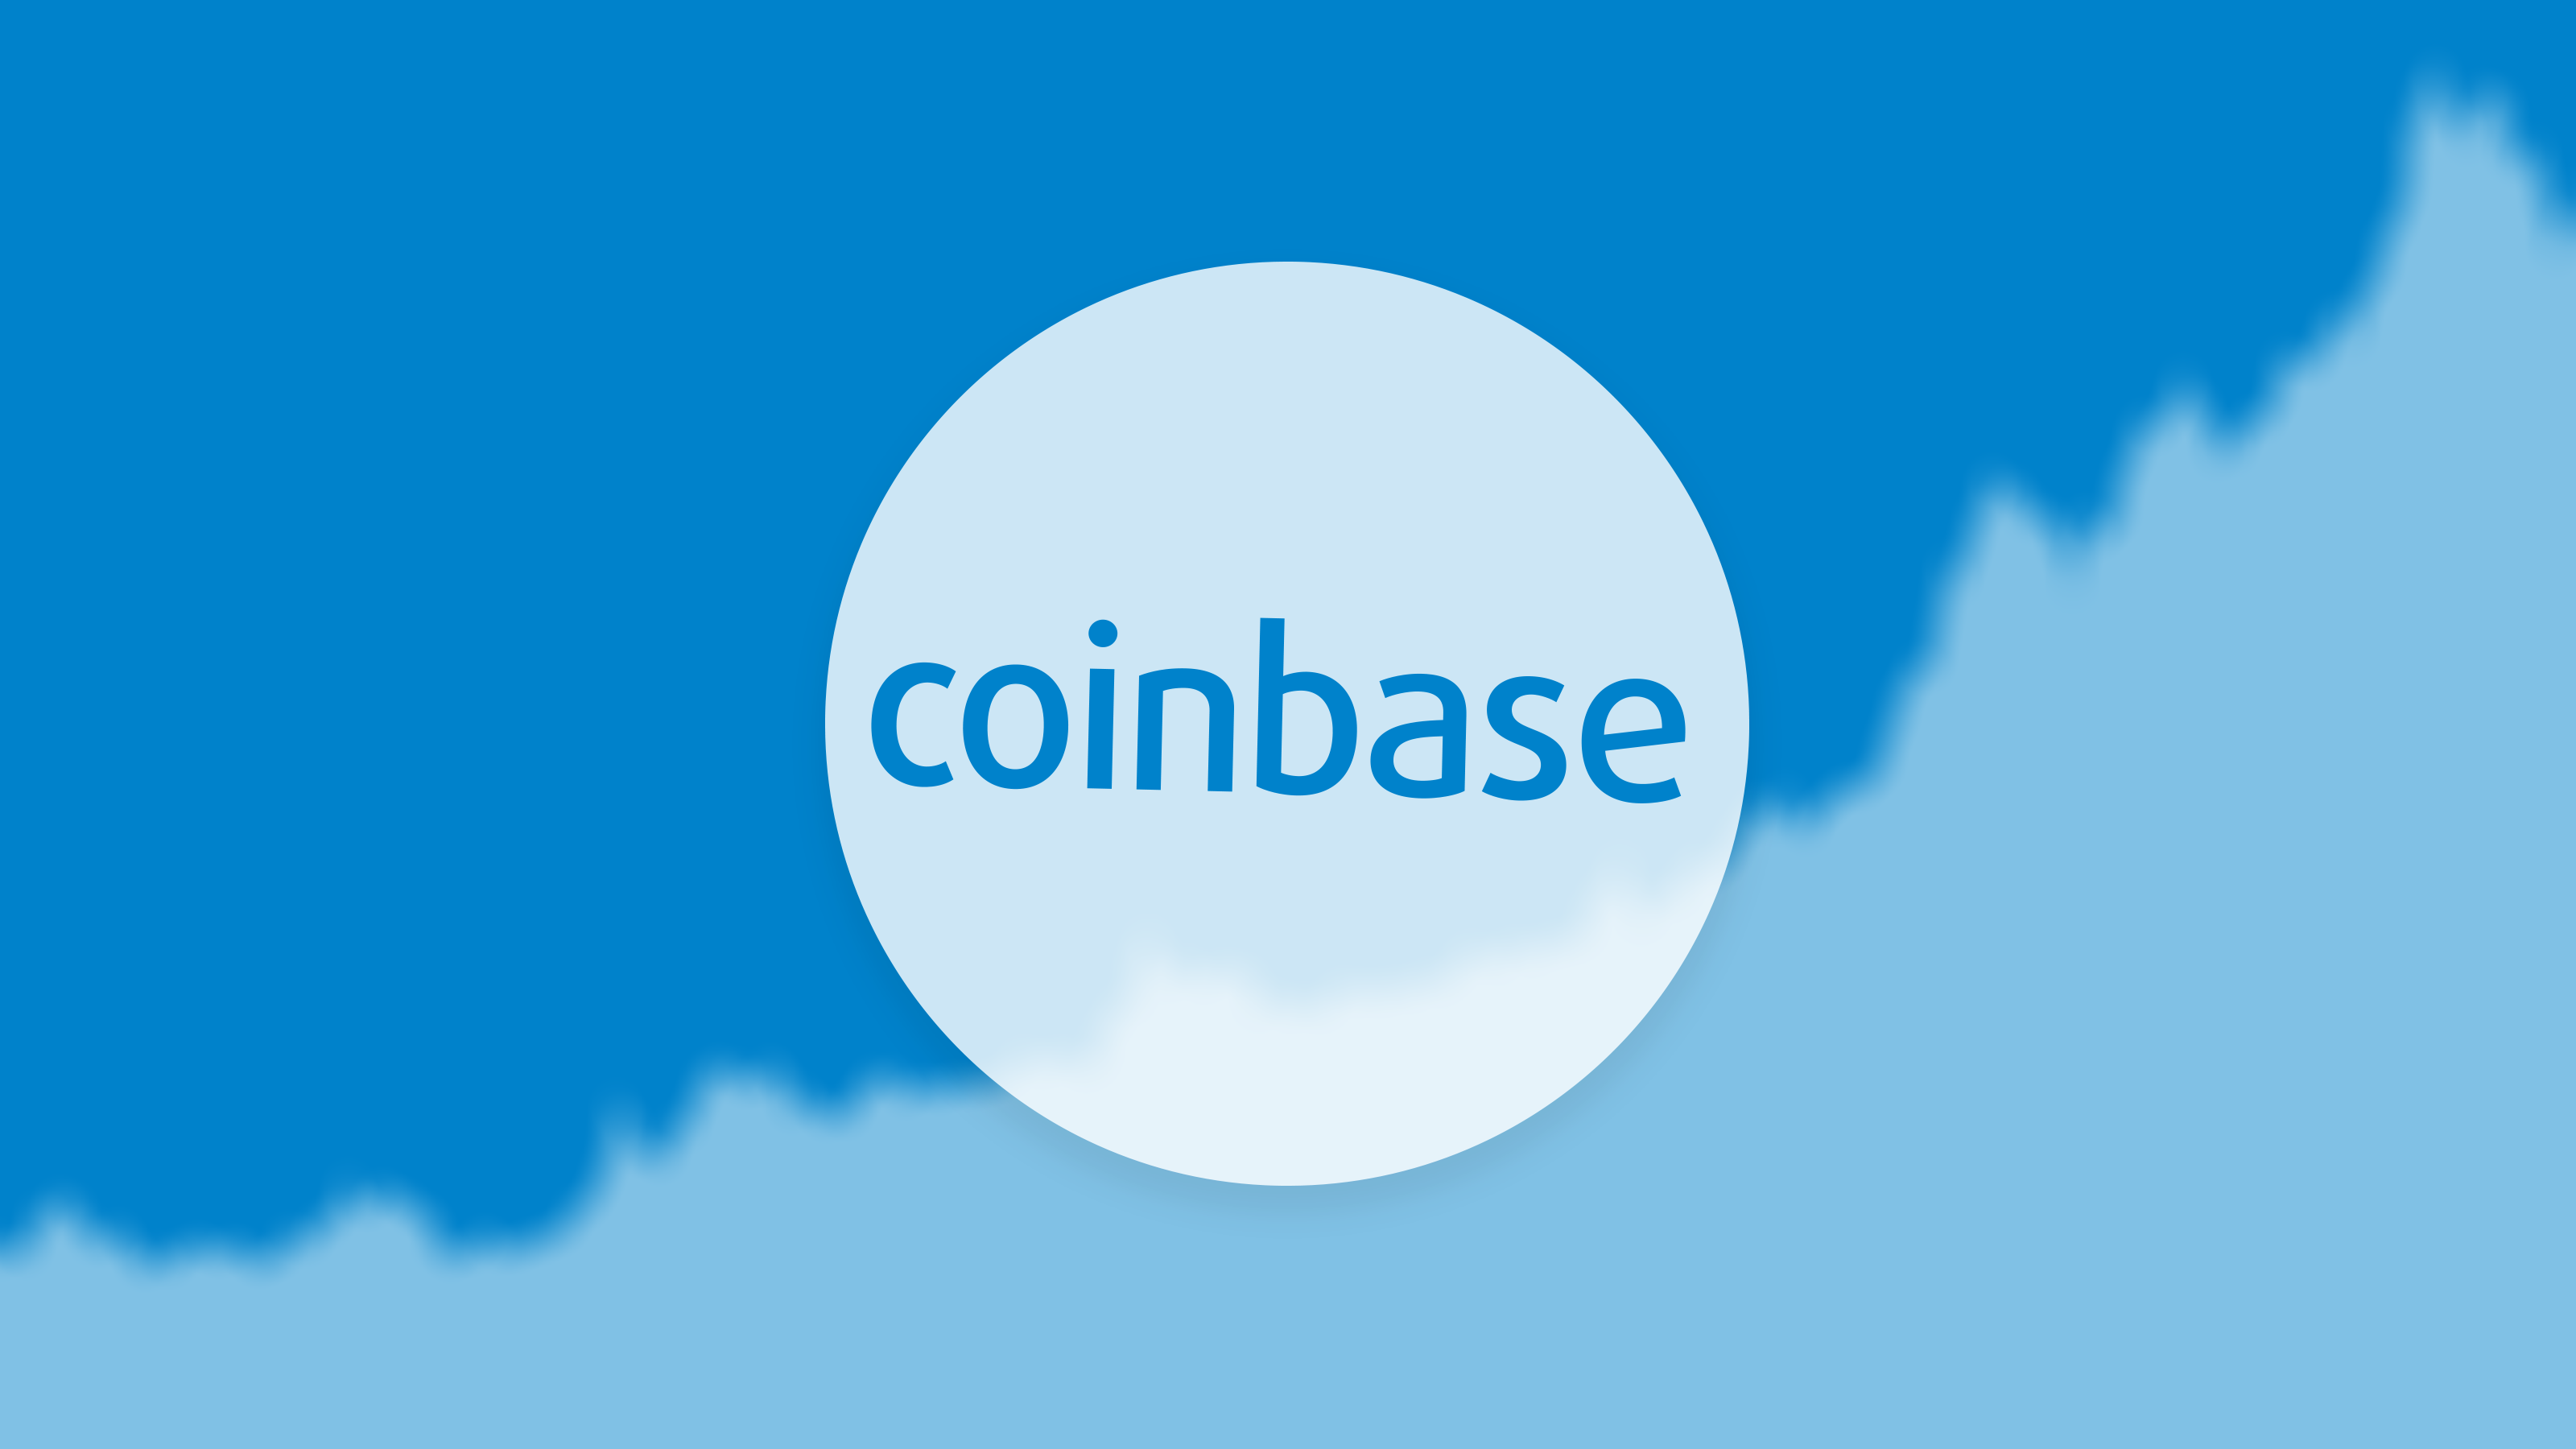 coinbase or bitcoin